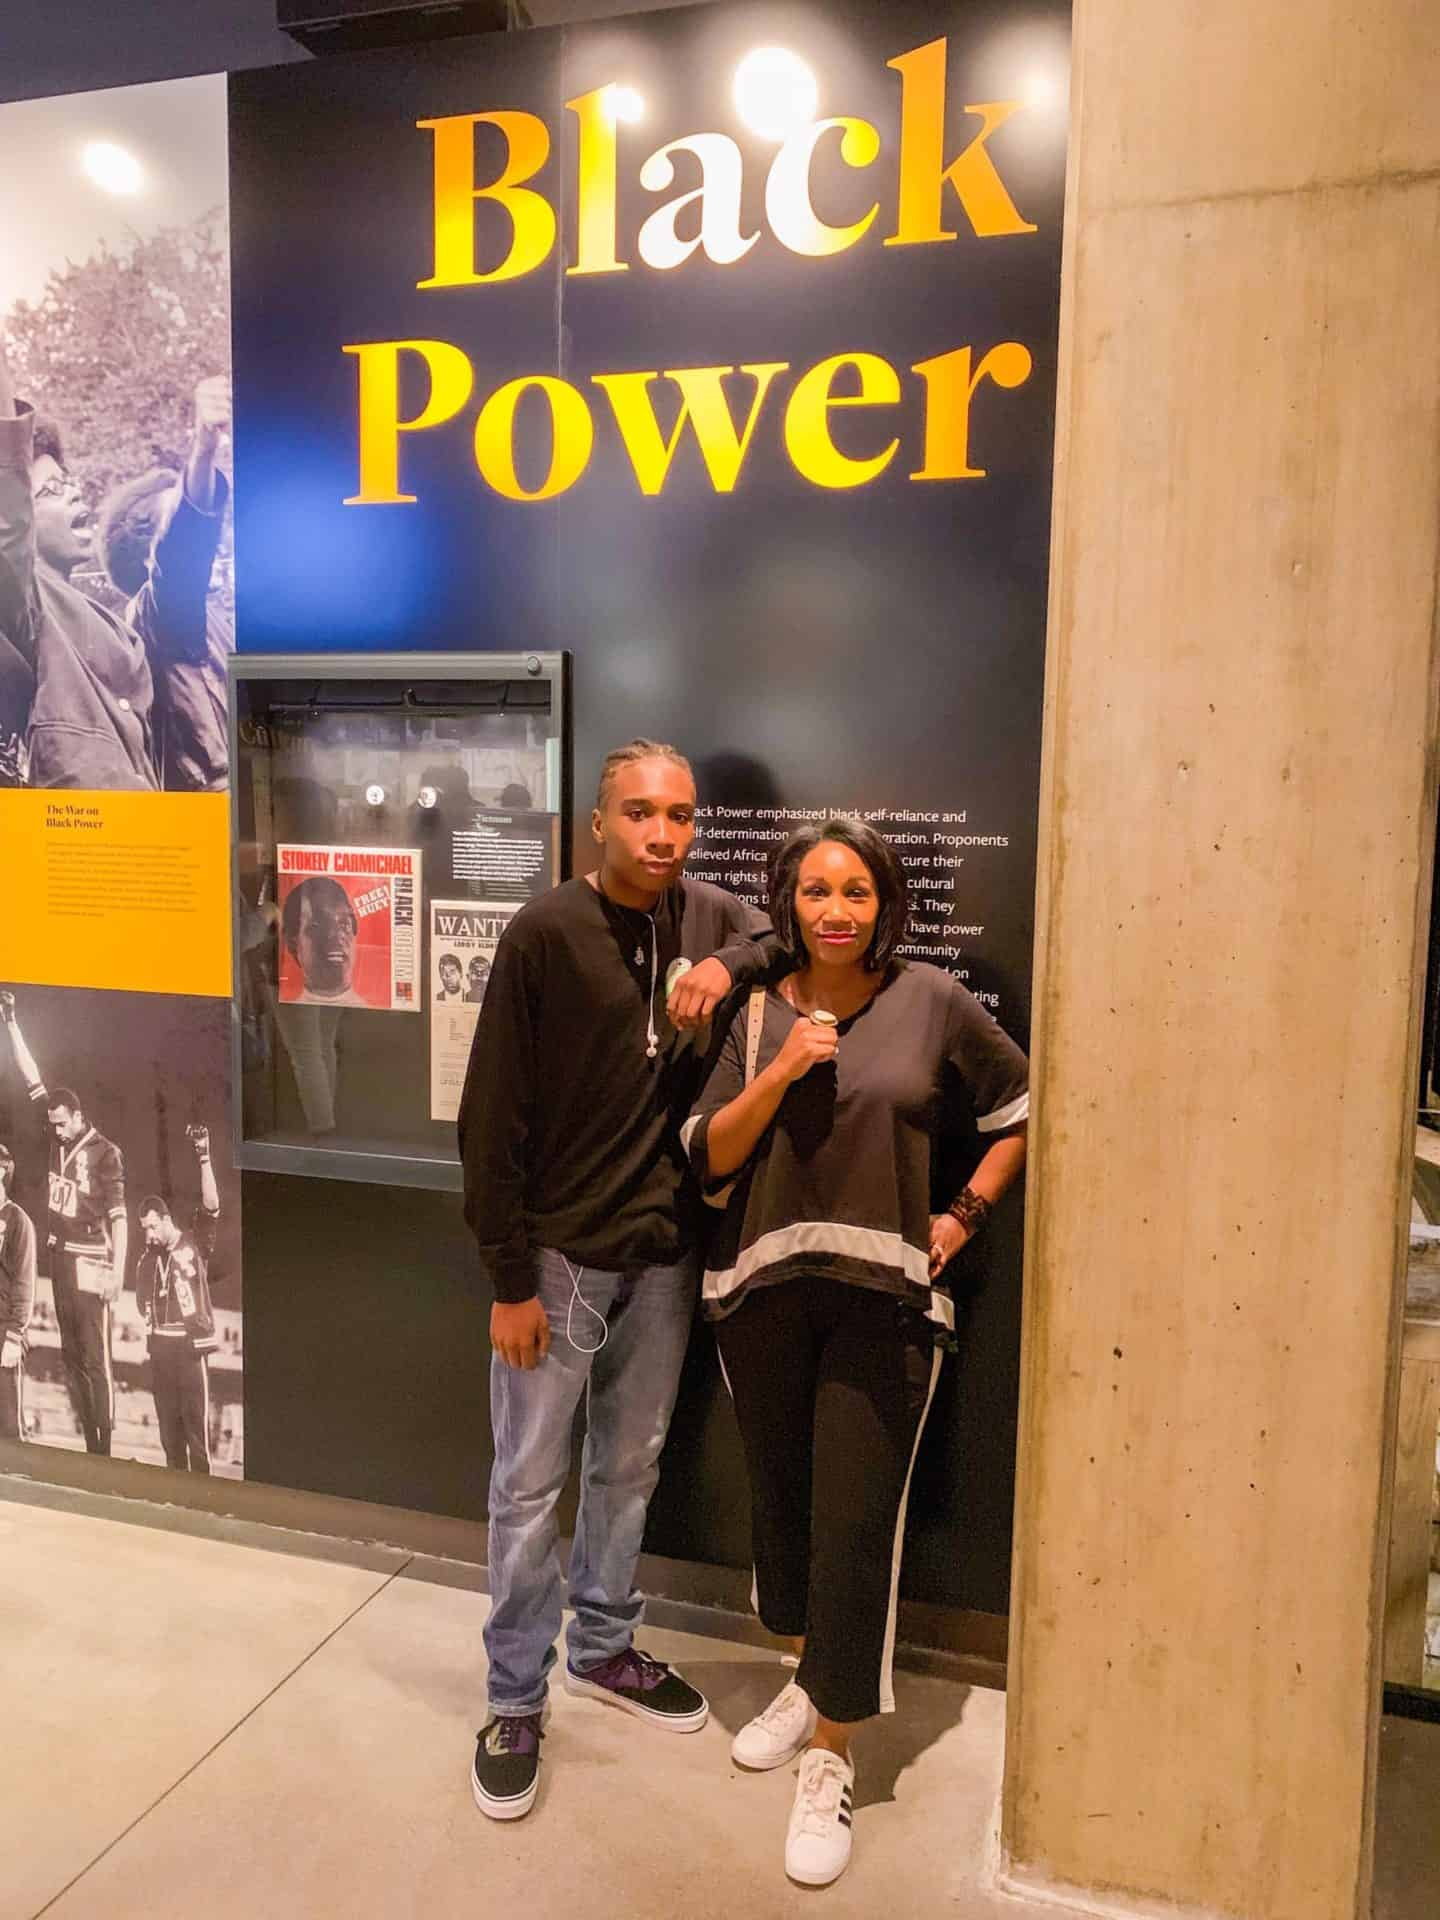 Shaunda Necole—Black Power Educating My Son On the 400th Anniversary of African American History, National Museum of African American History and Culture